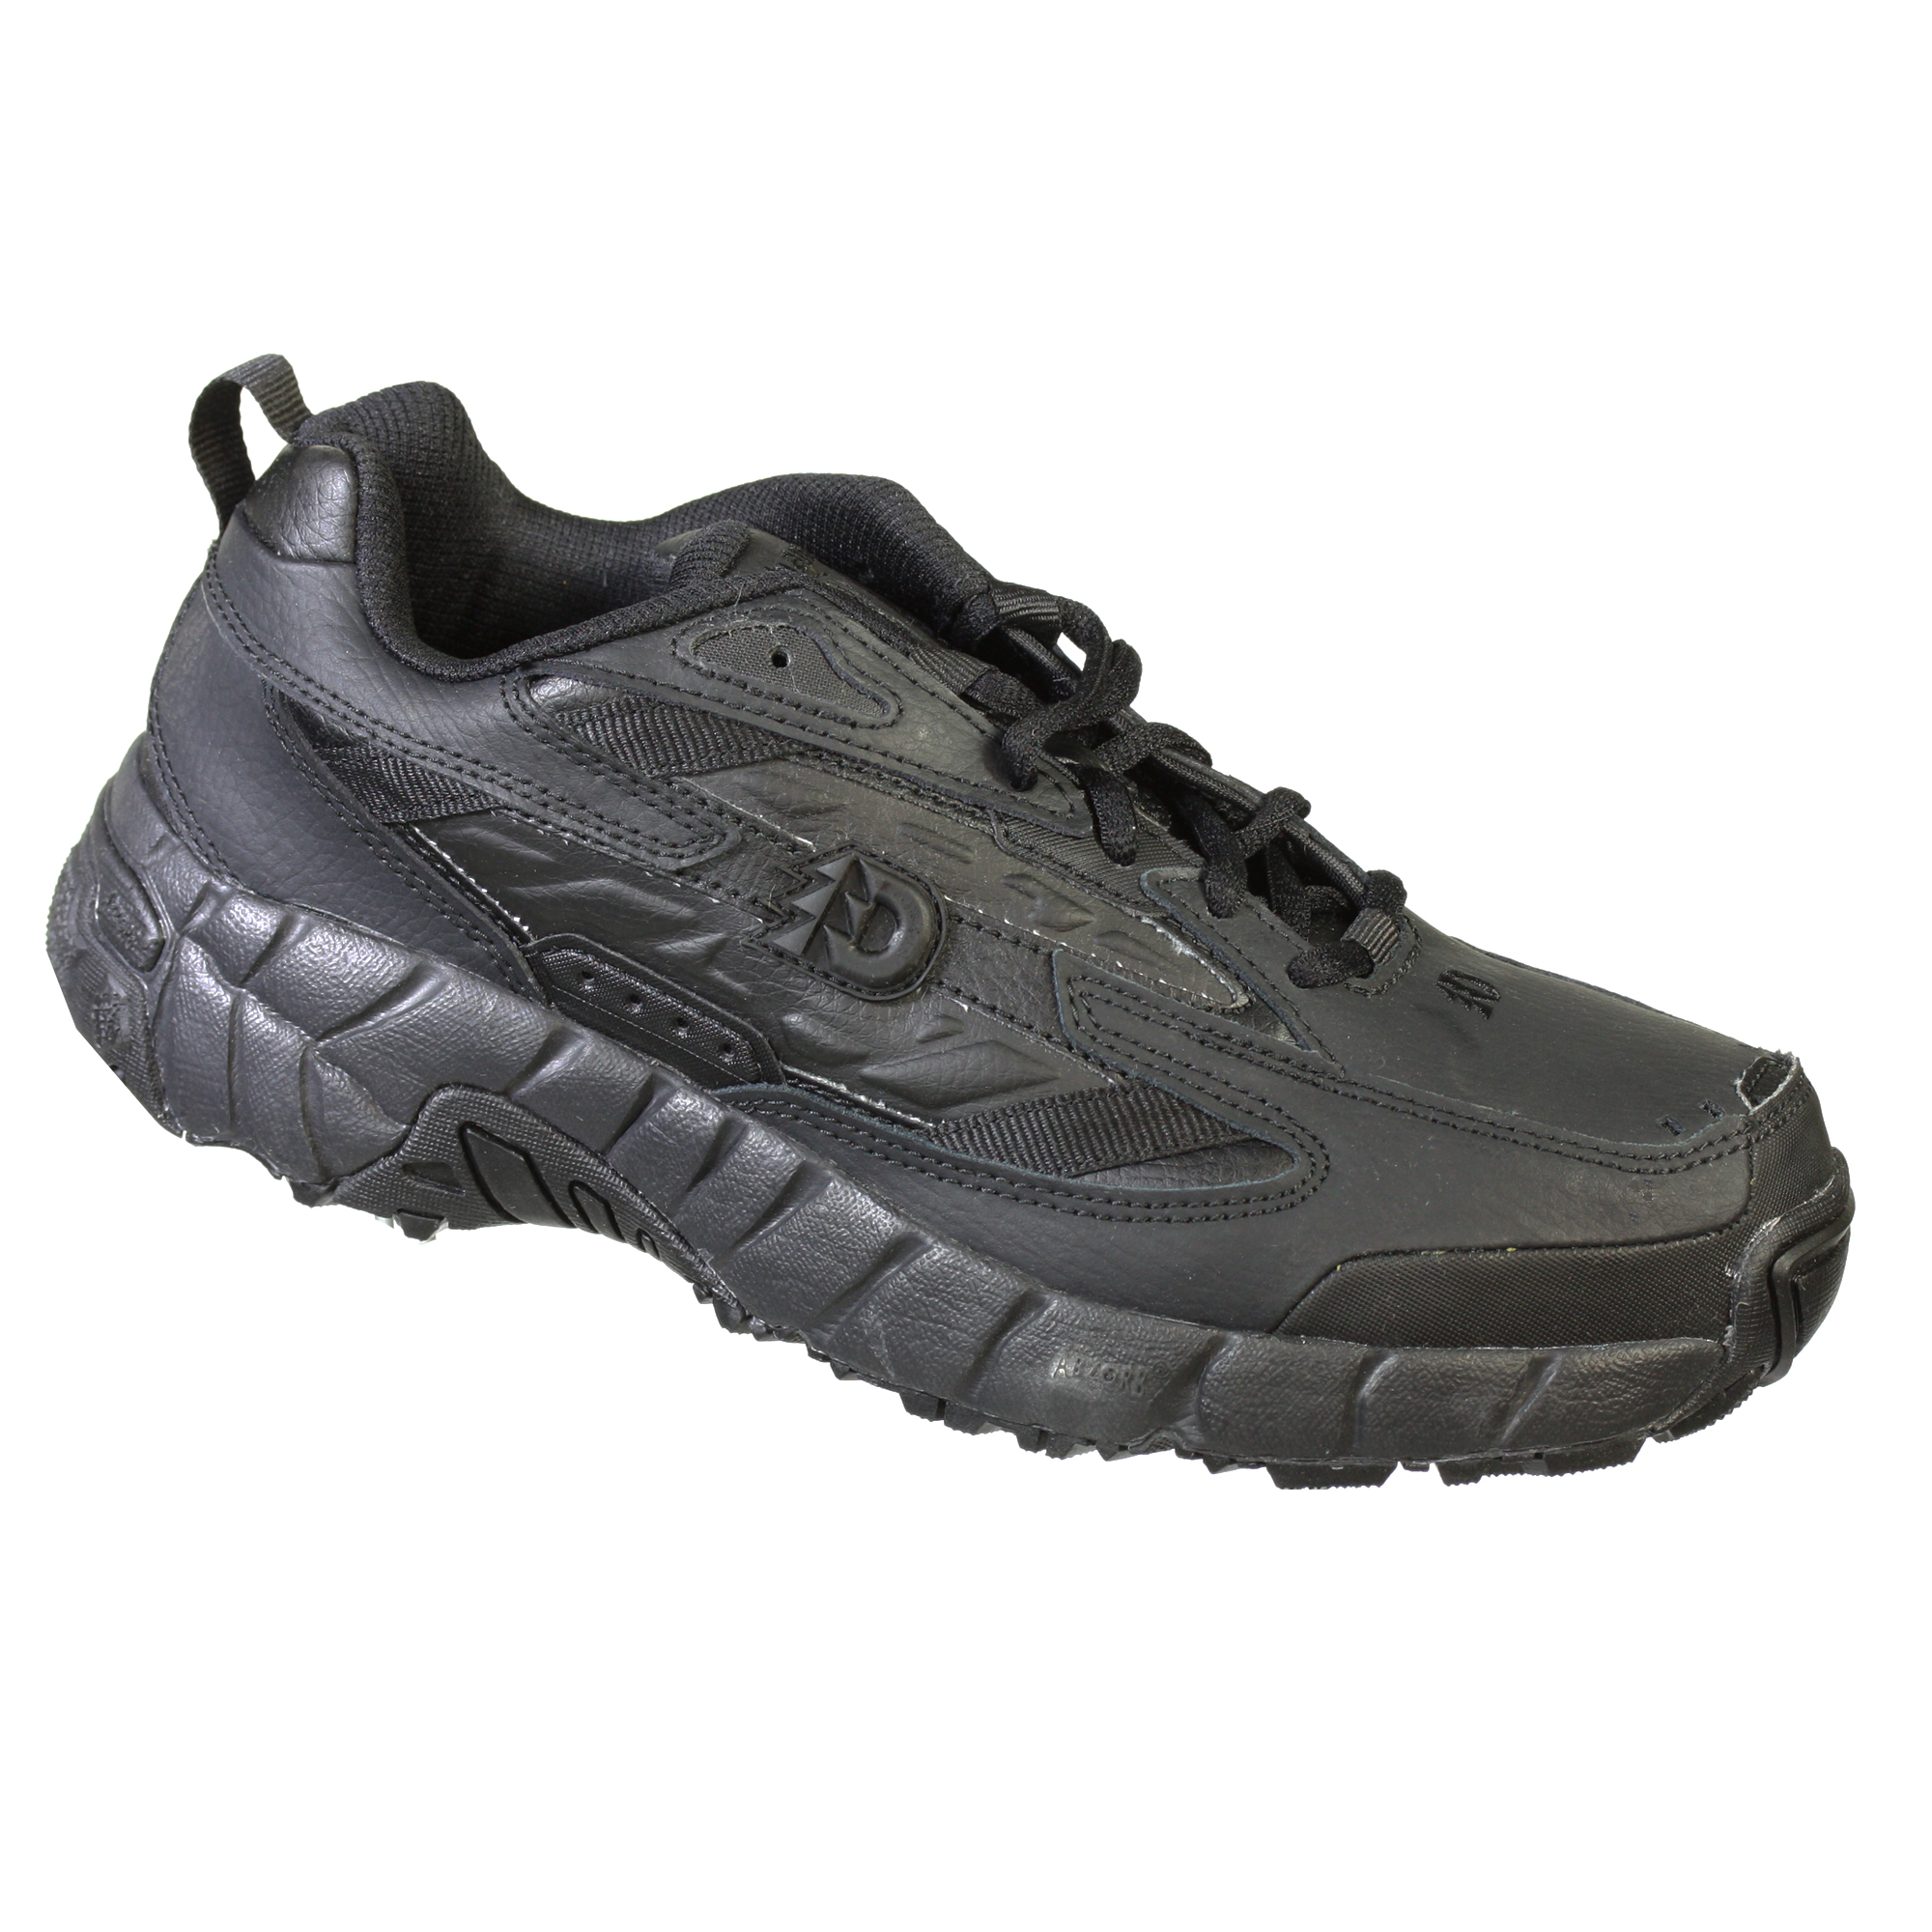 Dunham by New Balance DS664 Mens Steel Toe SDI Athletic Shoes Black 8 D by Dunham